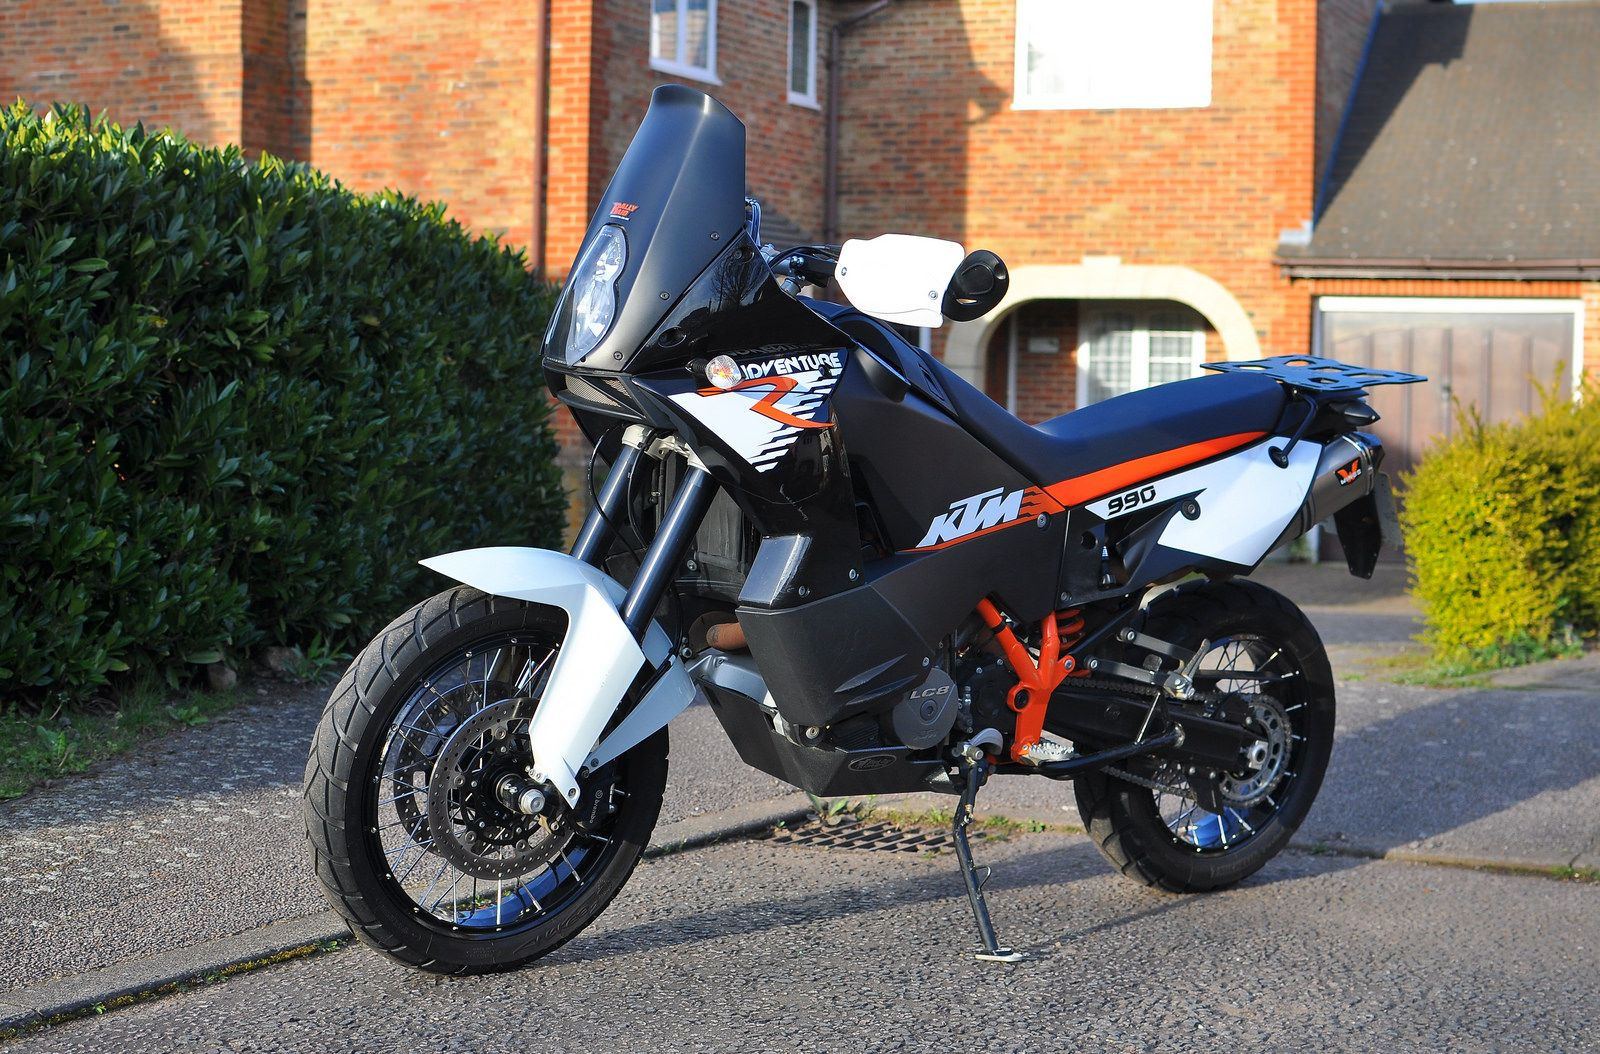 KTM 990 adventure R with 19/17 wheels - Caponord rims and